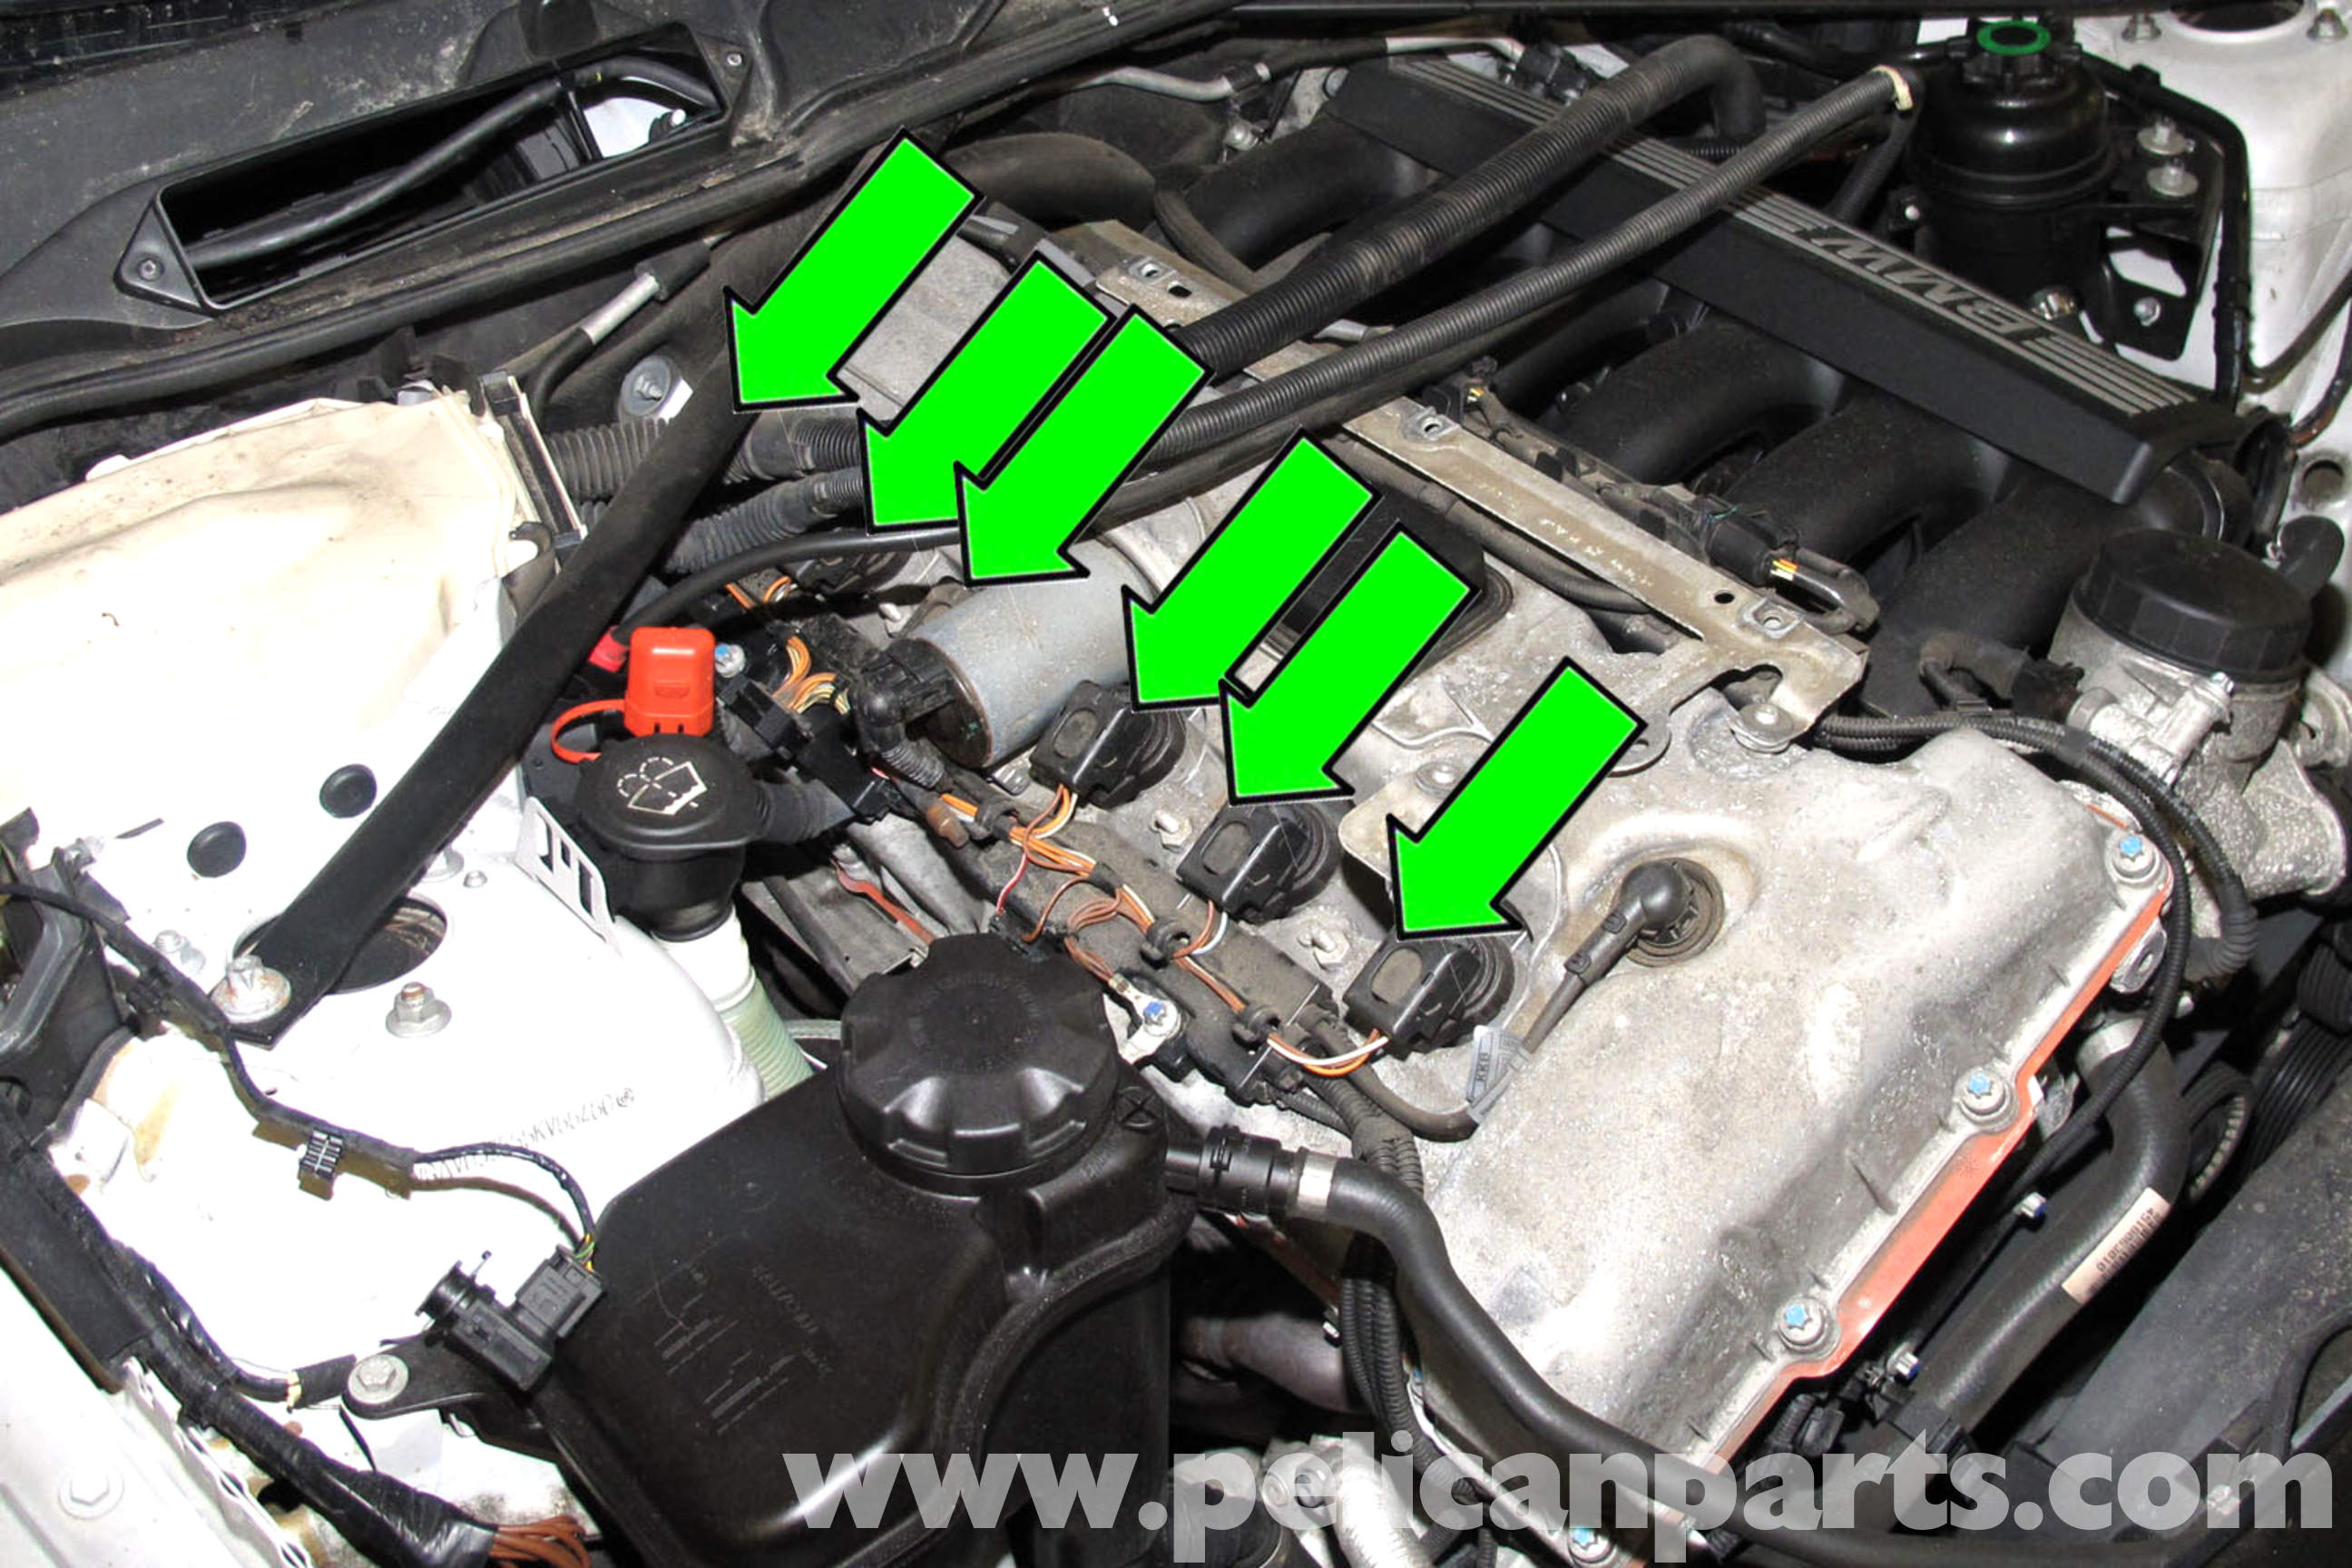 pic04 bmw e90 valvetronic motor replacement e91, e92, e93 pelican BMW E46 Wiring Diagrams at bakdesigns.co